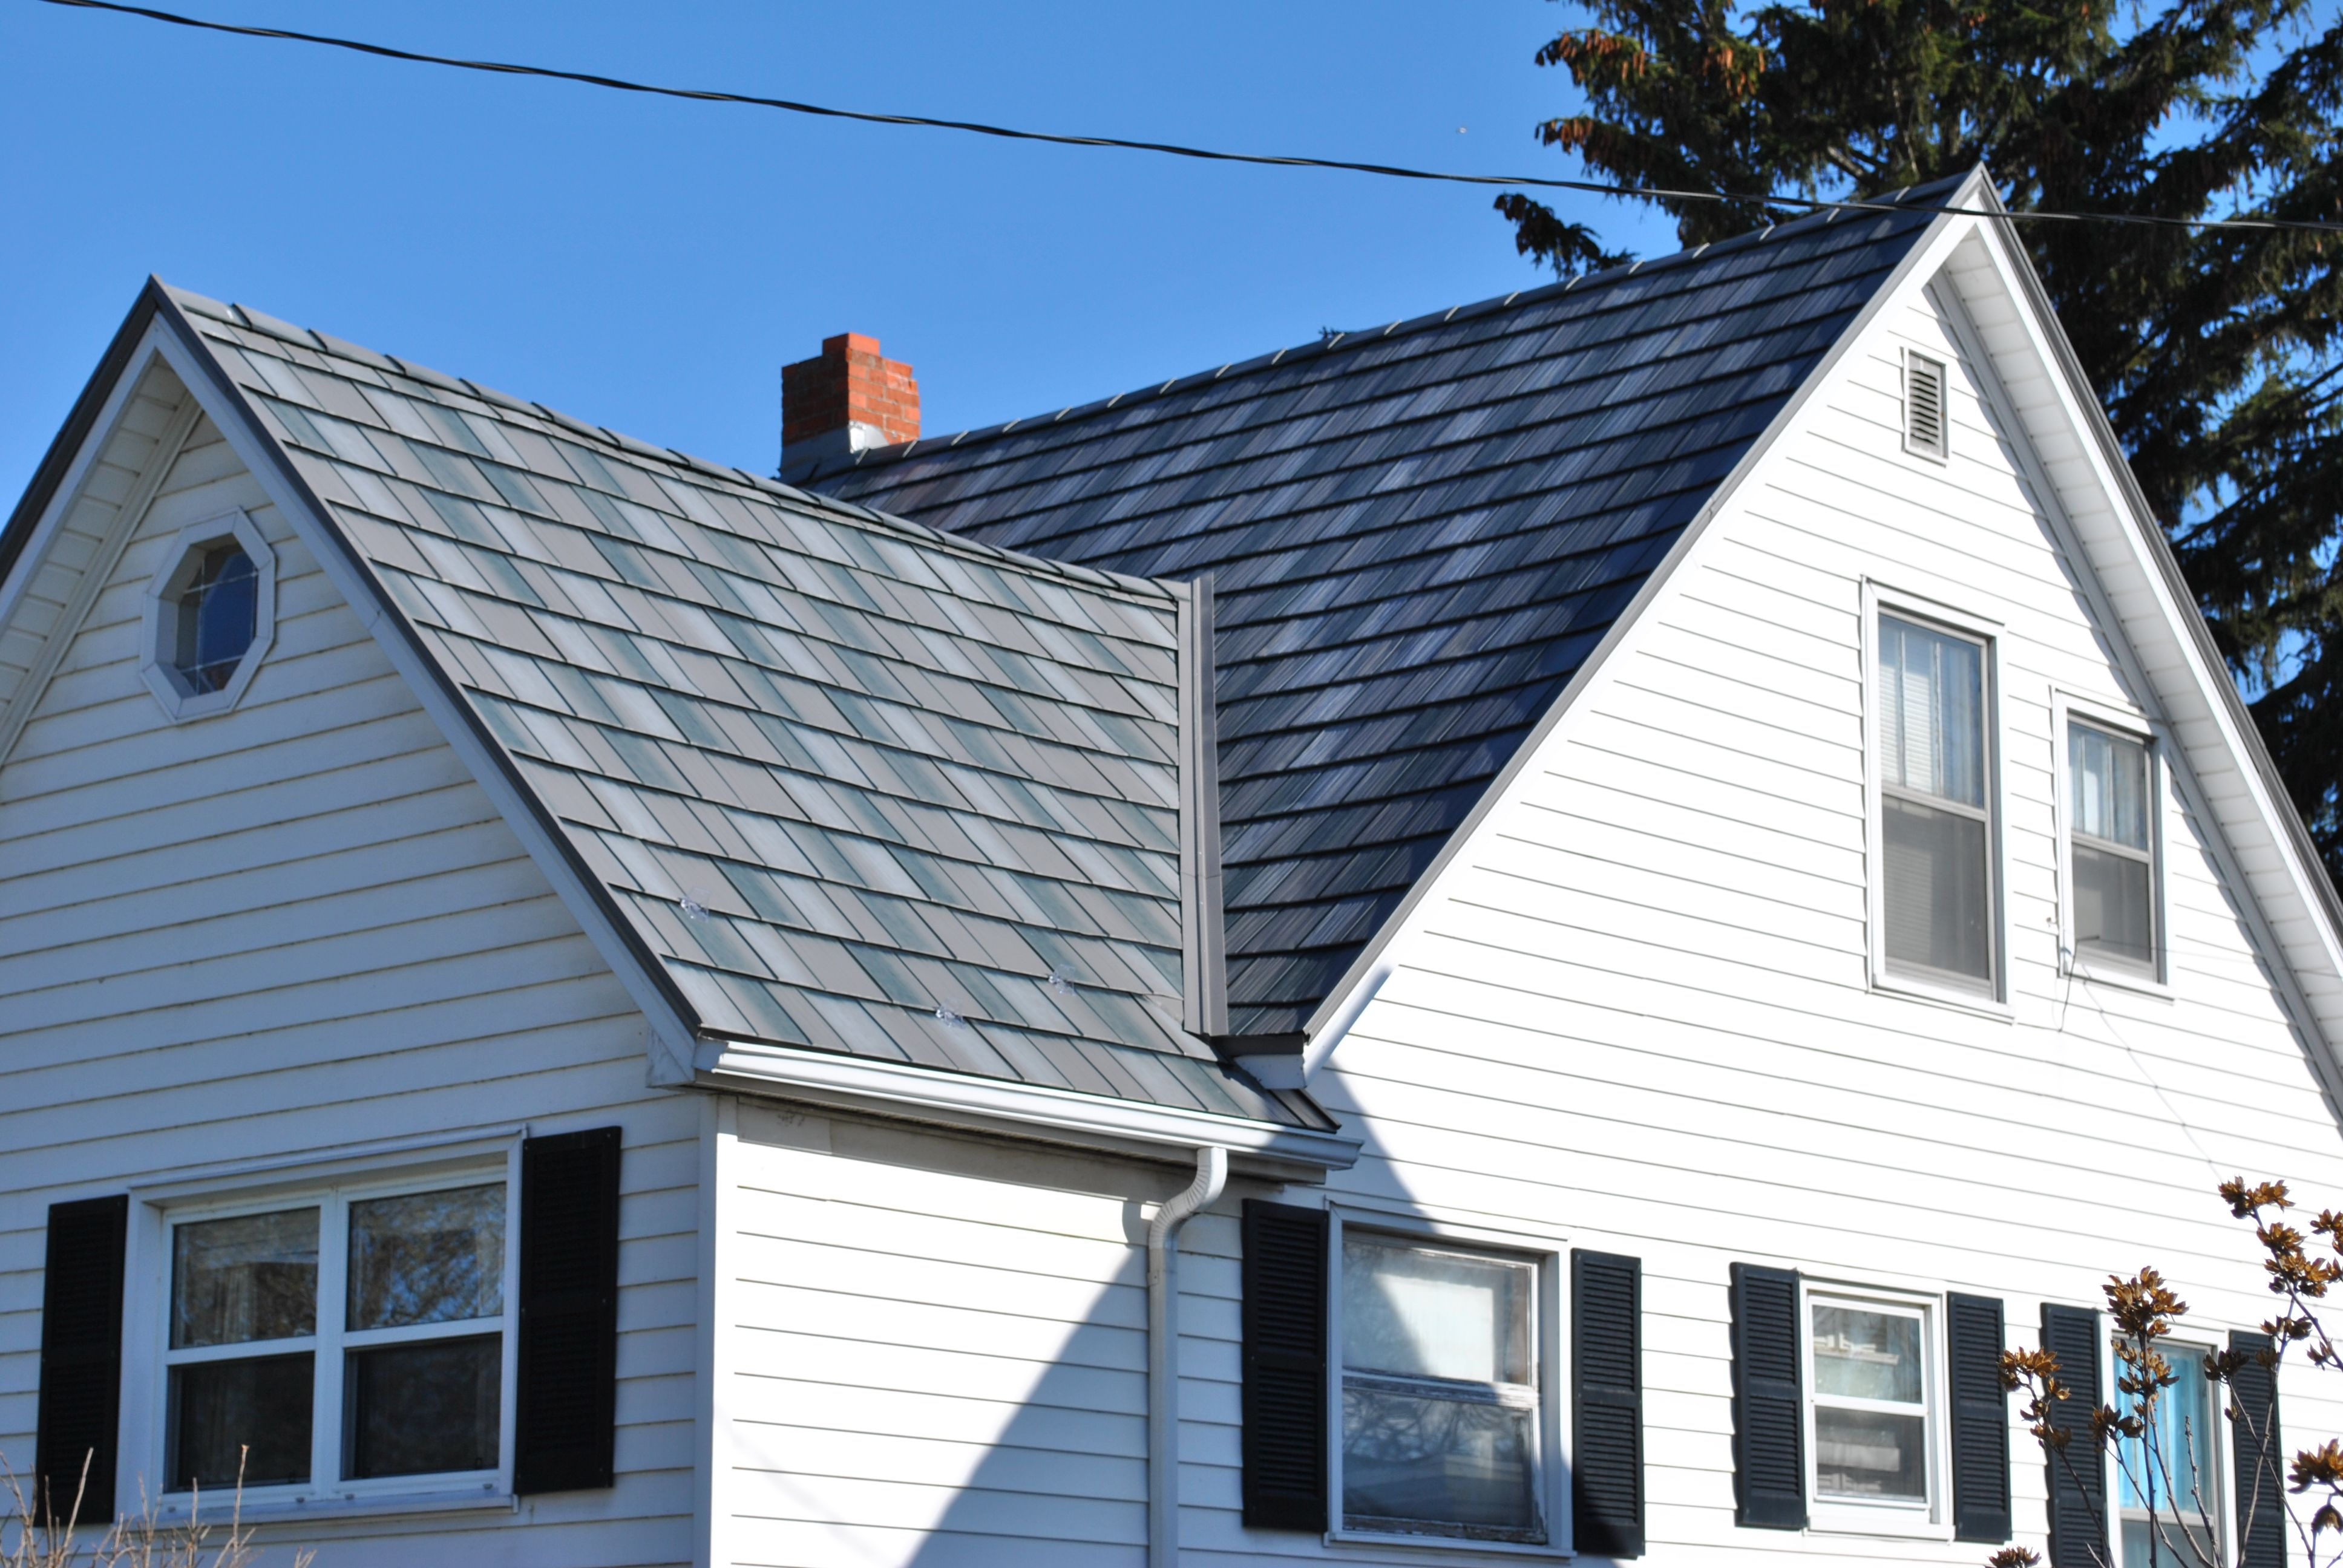 Lovely Leamington Ontario Home With Permanent Metal Roofing In Charcoal Grey Shake Metal Roof Roofing Outdoor Decor